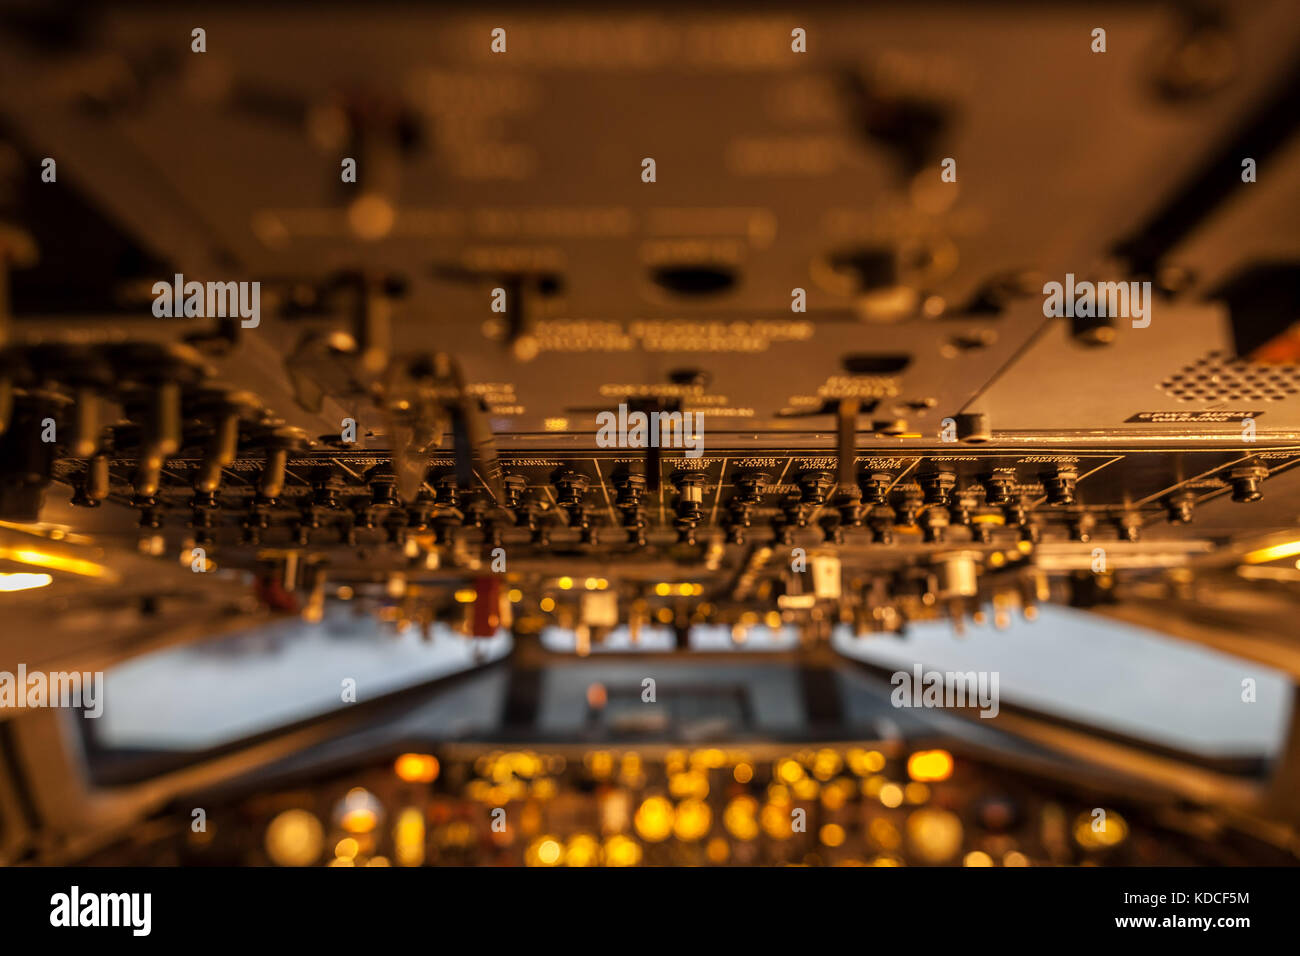 A lot of control levers in aircraft cockpit with selective focus - Stock Image